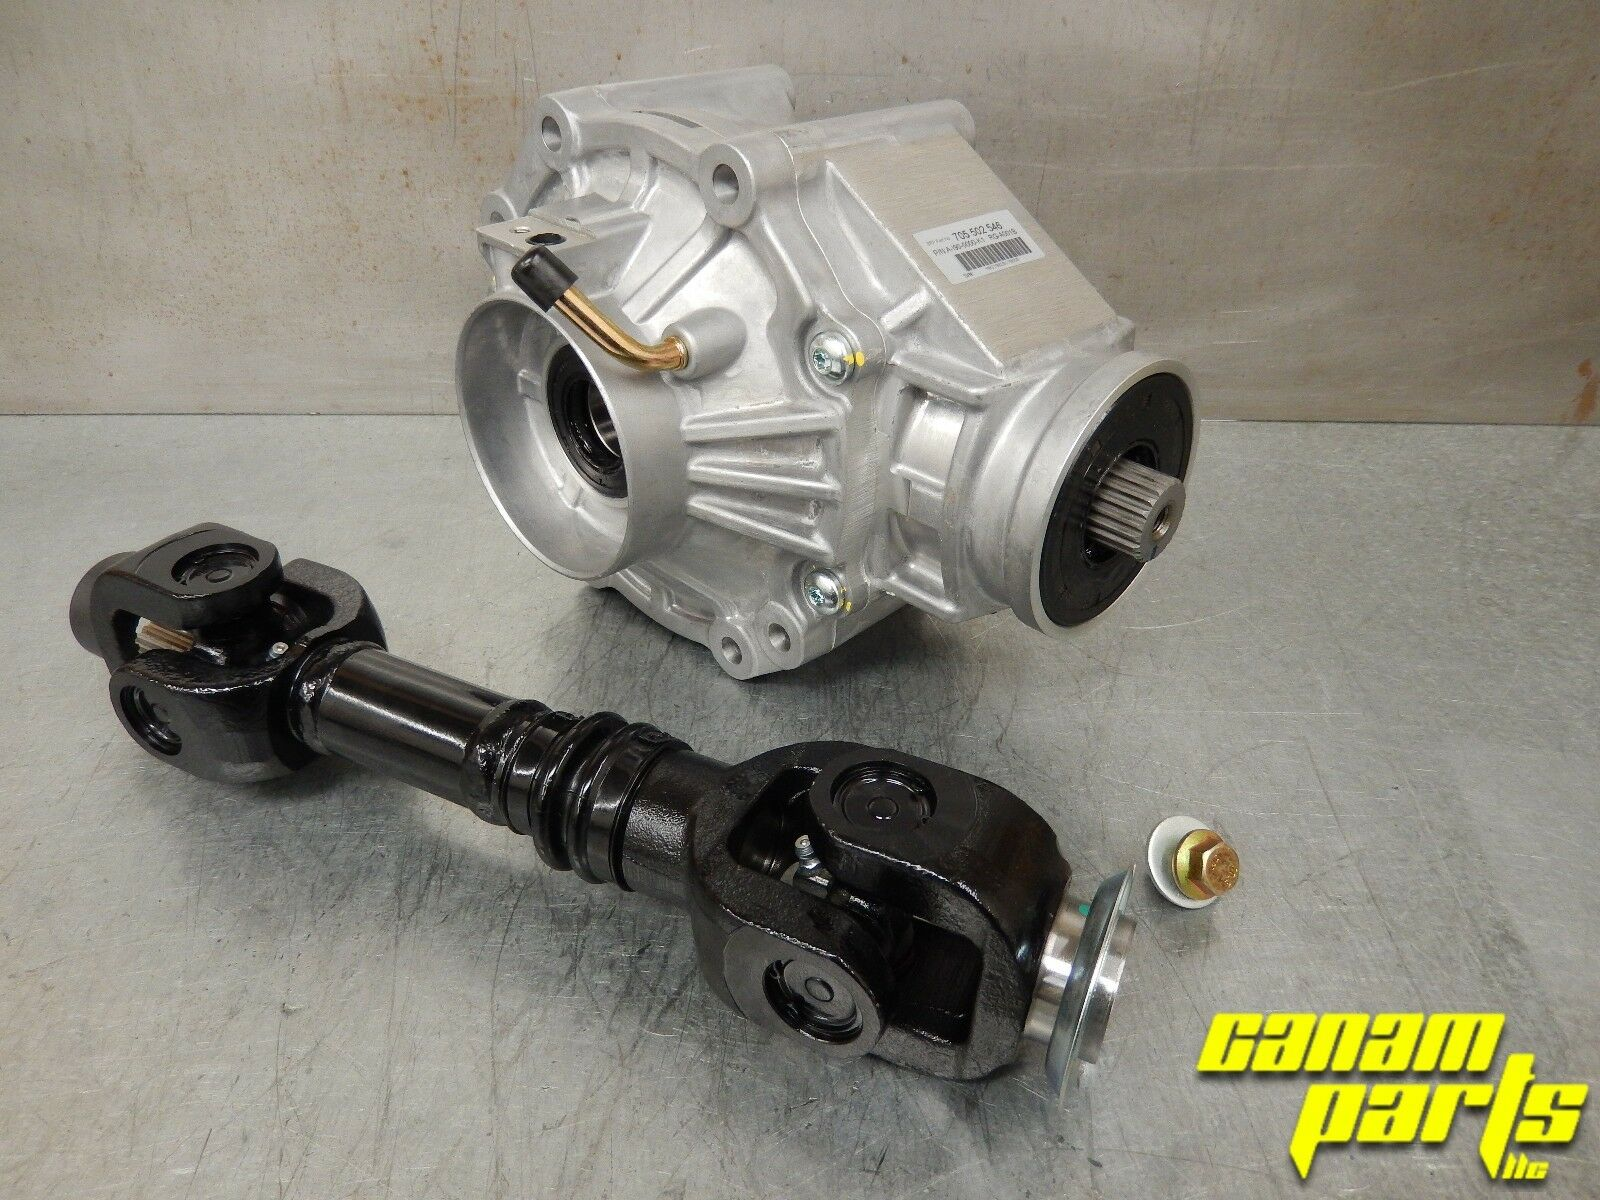 New Oem G2 Atv Rear Differential Upgrade Kit Xmr Or 2019 Canam Parts Guy